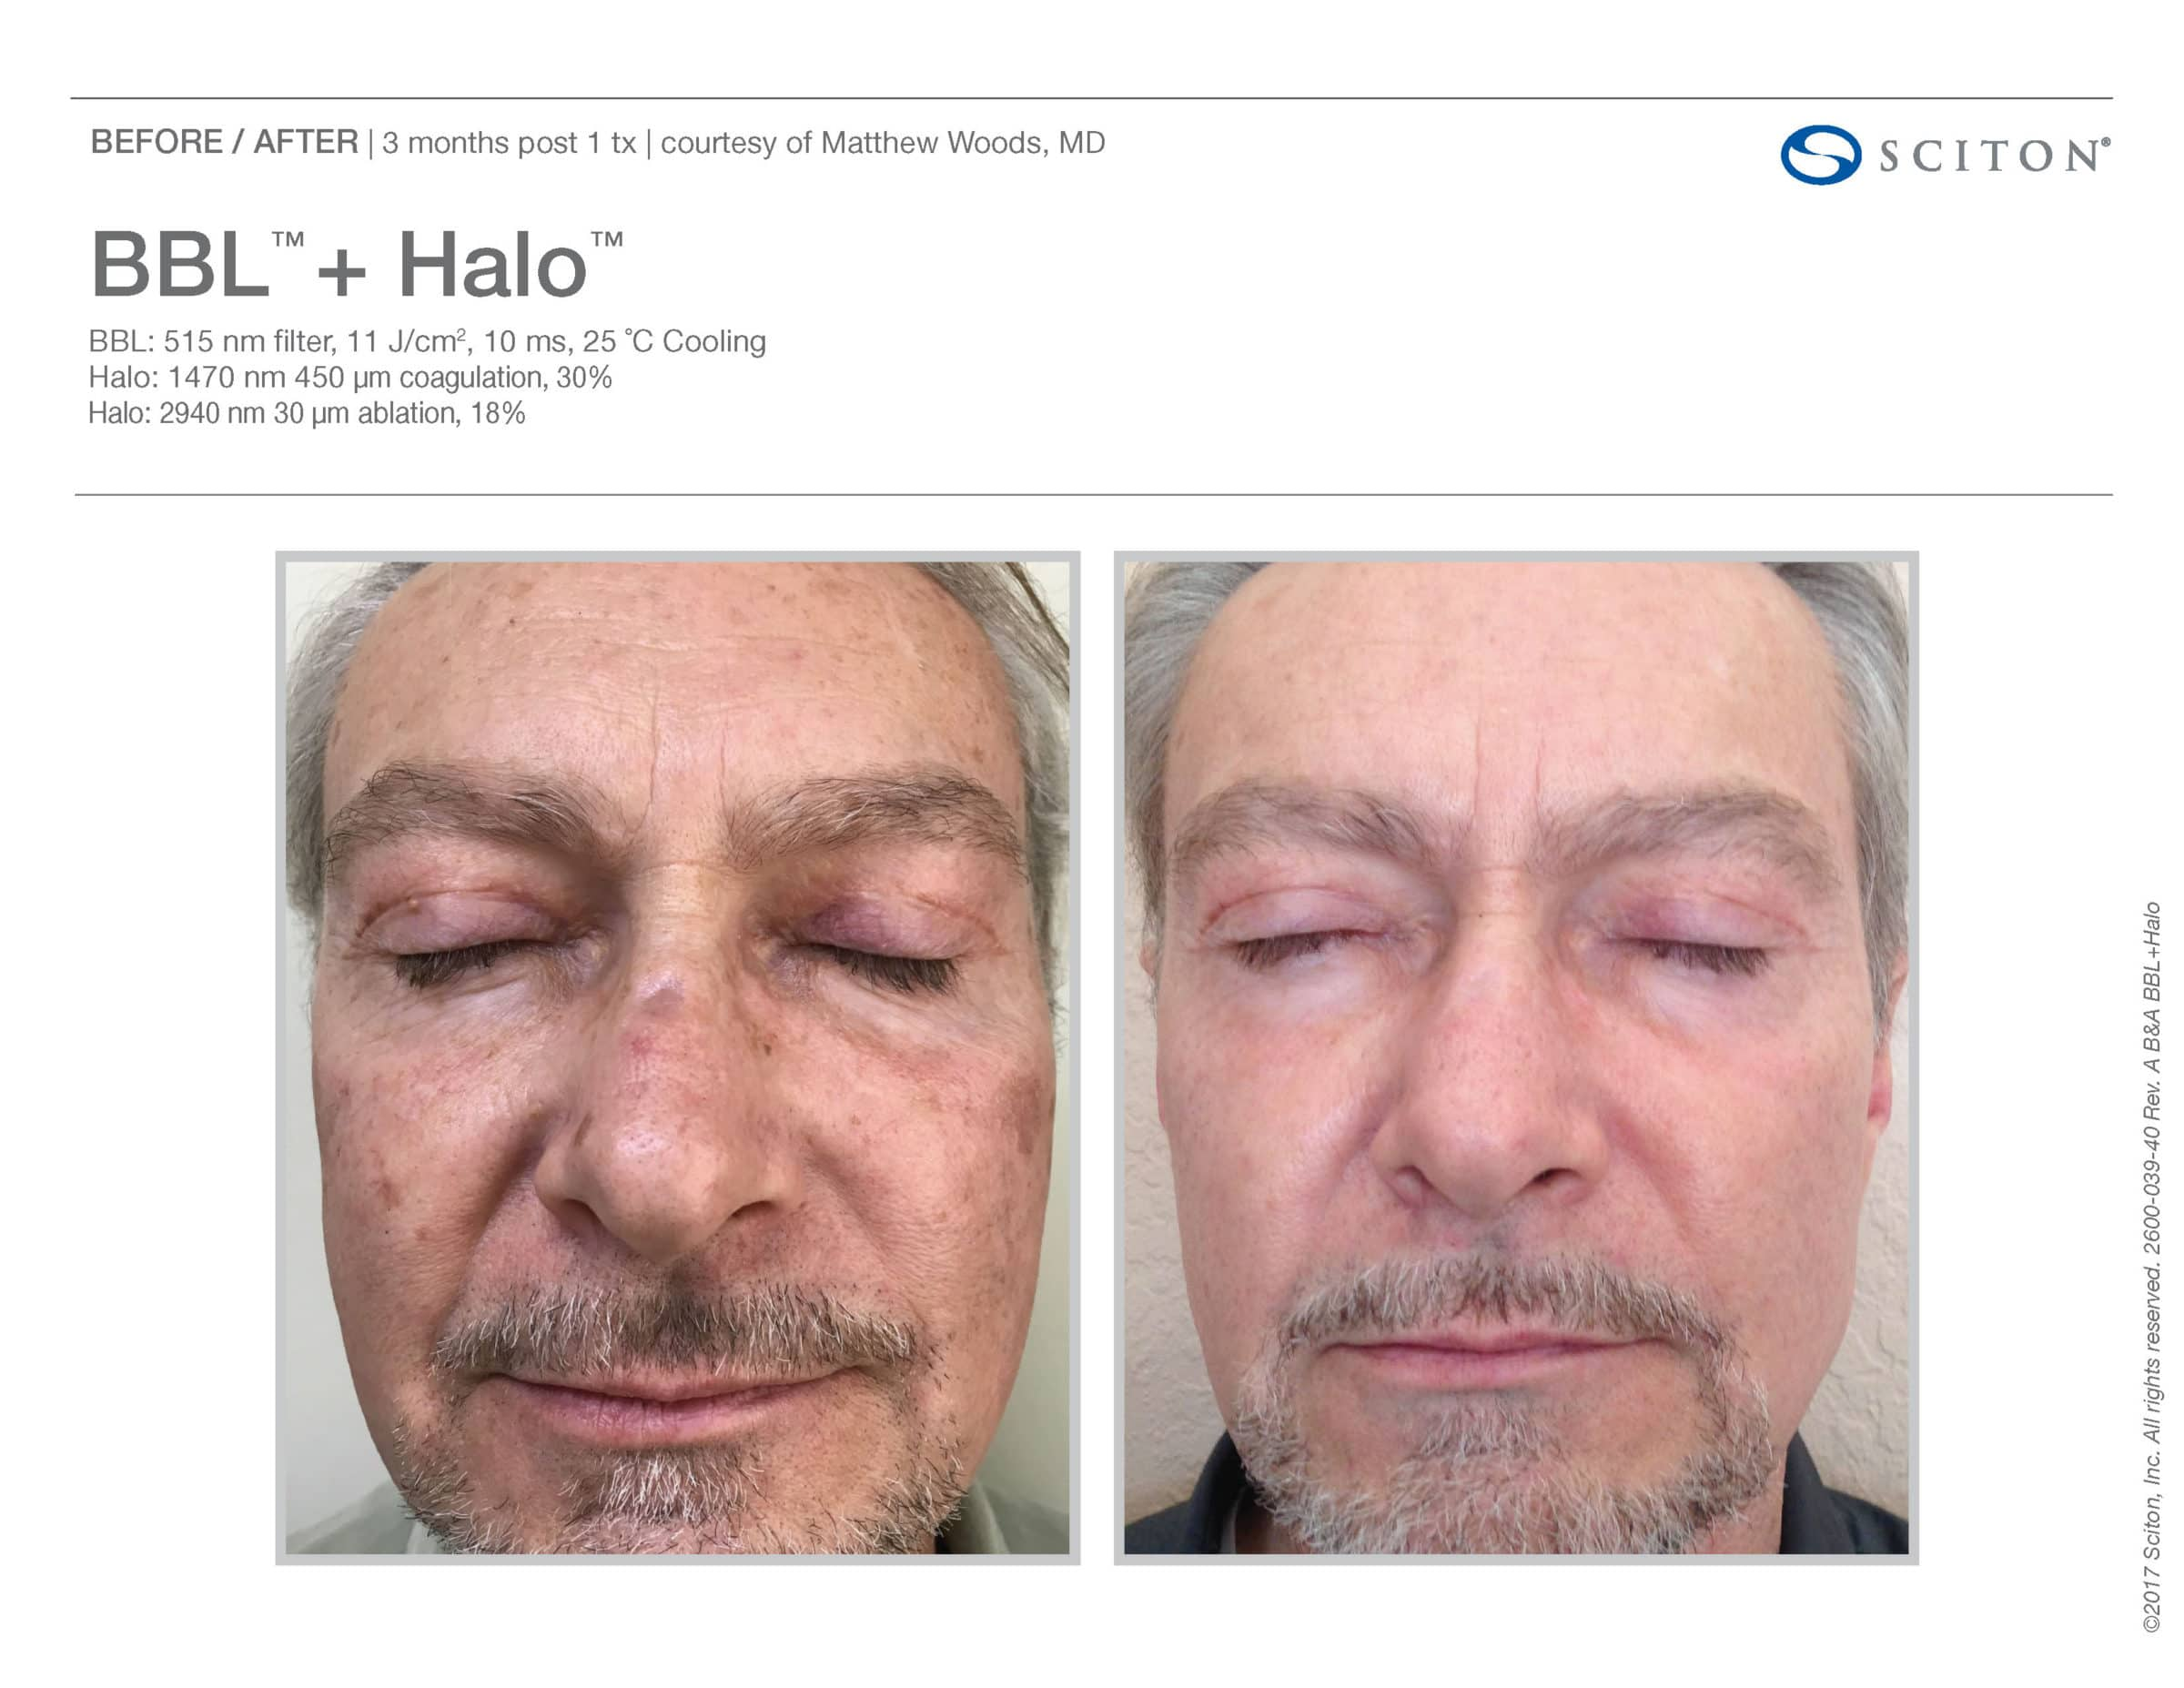 Halo + BBL - Well Medical Arts: Seattle's Anti-Aging Clinic